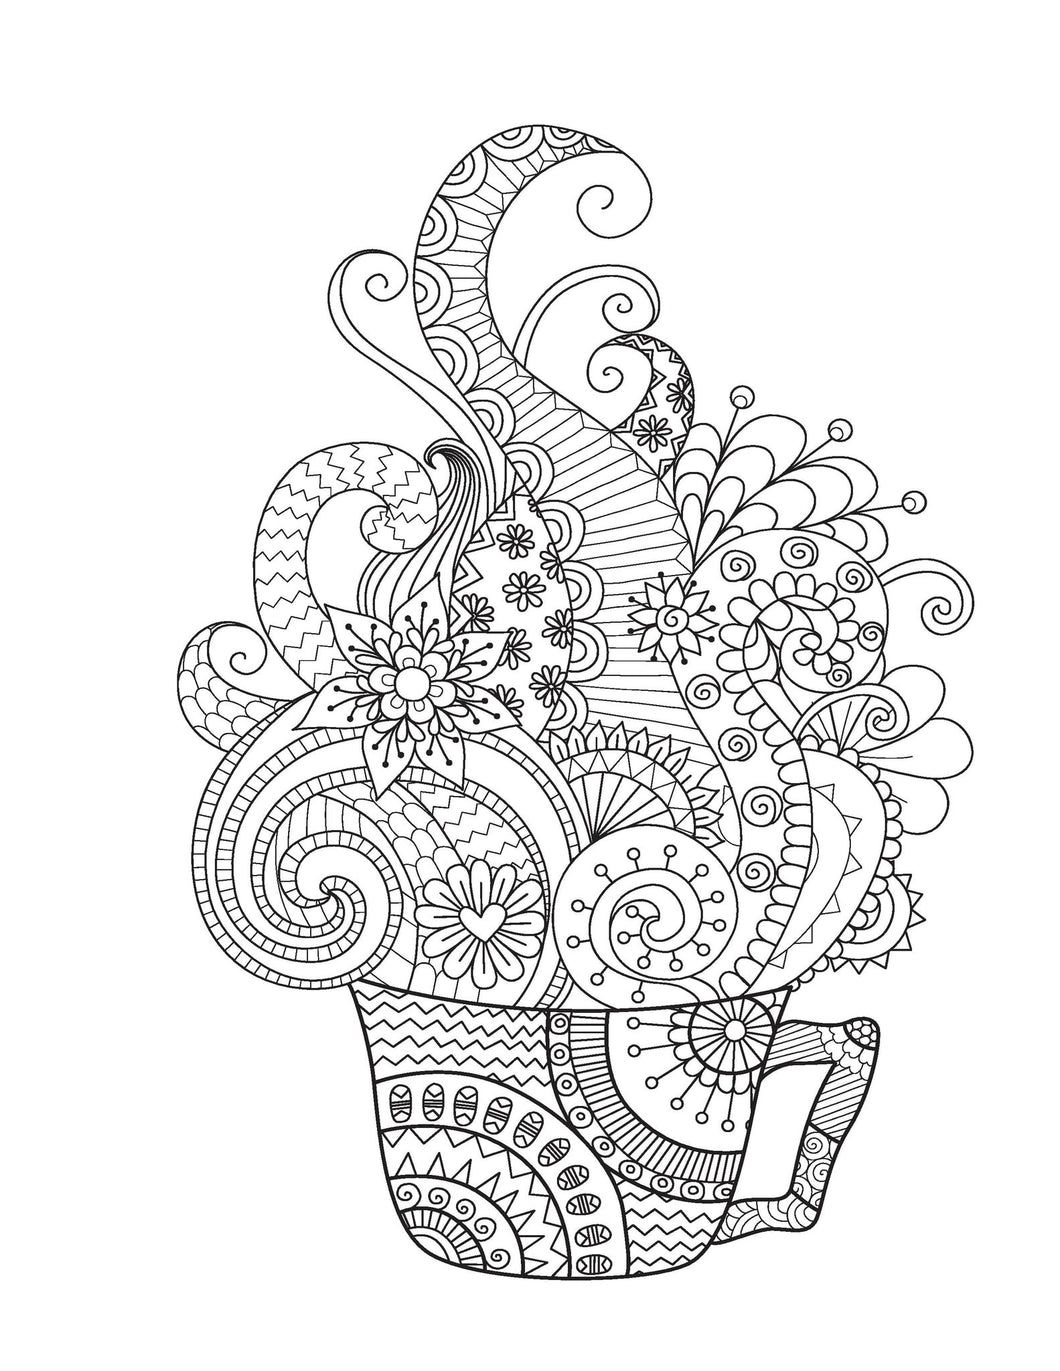 Medium designs for adults who color live your life in color series coloring book